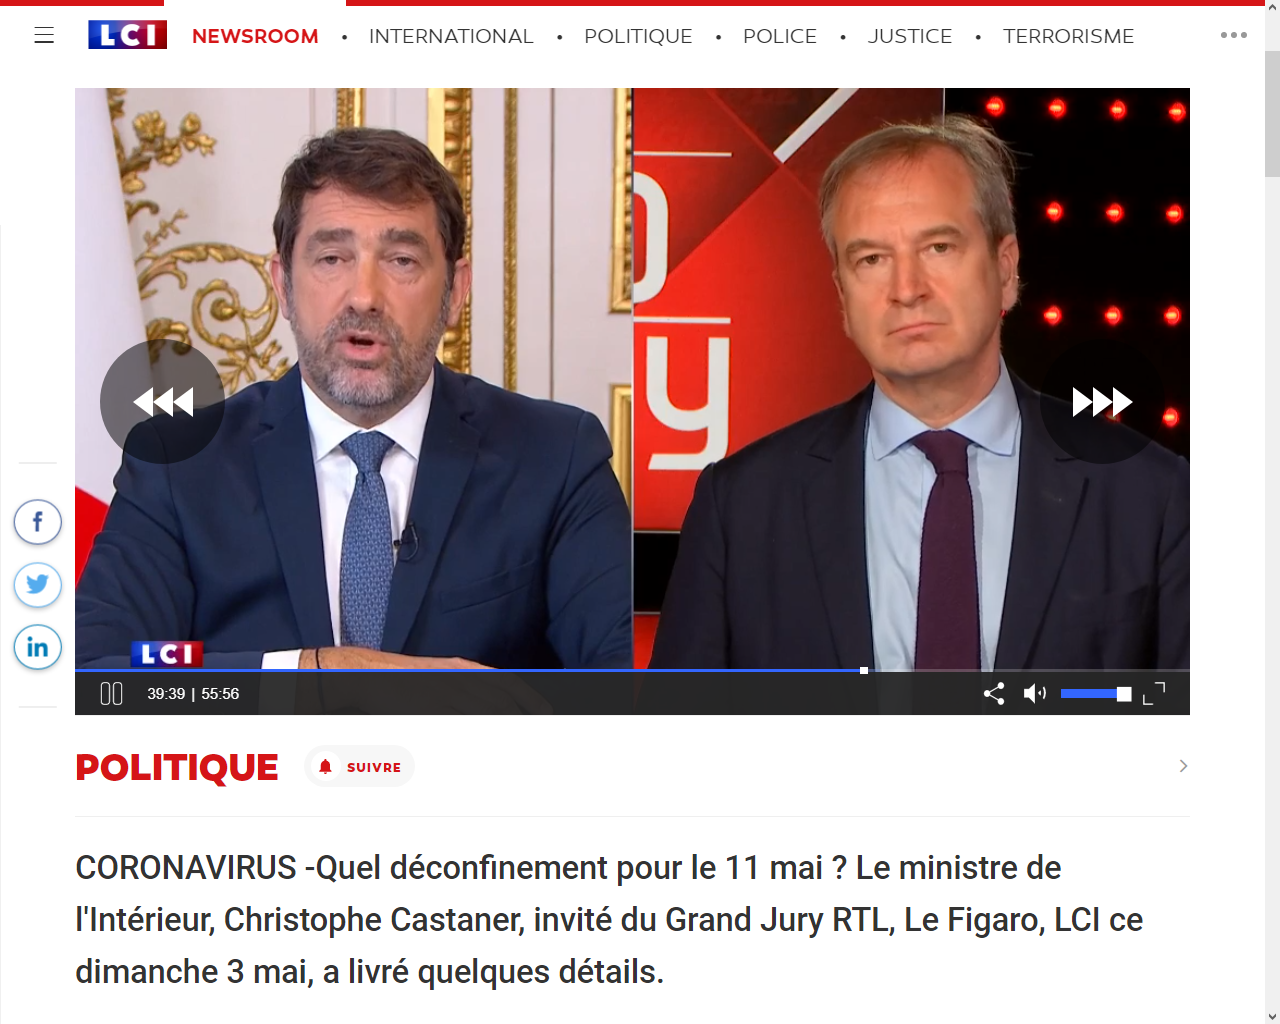 https://www.lci.fr/politique/video-coronavirus-covid-19-date-du-deconfinement-retour-des-parisiens-vacances-d-ete-christophe-castaner-detaille-l-apres-11-mai-grand-jury-2152757.html